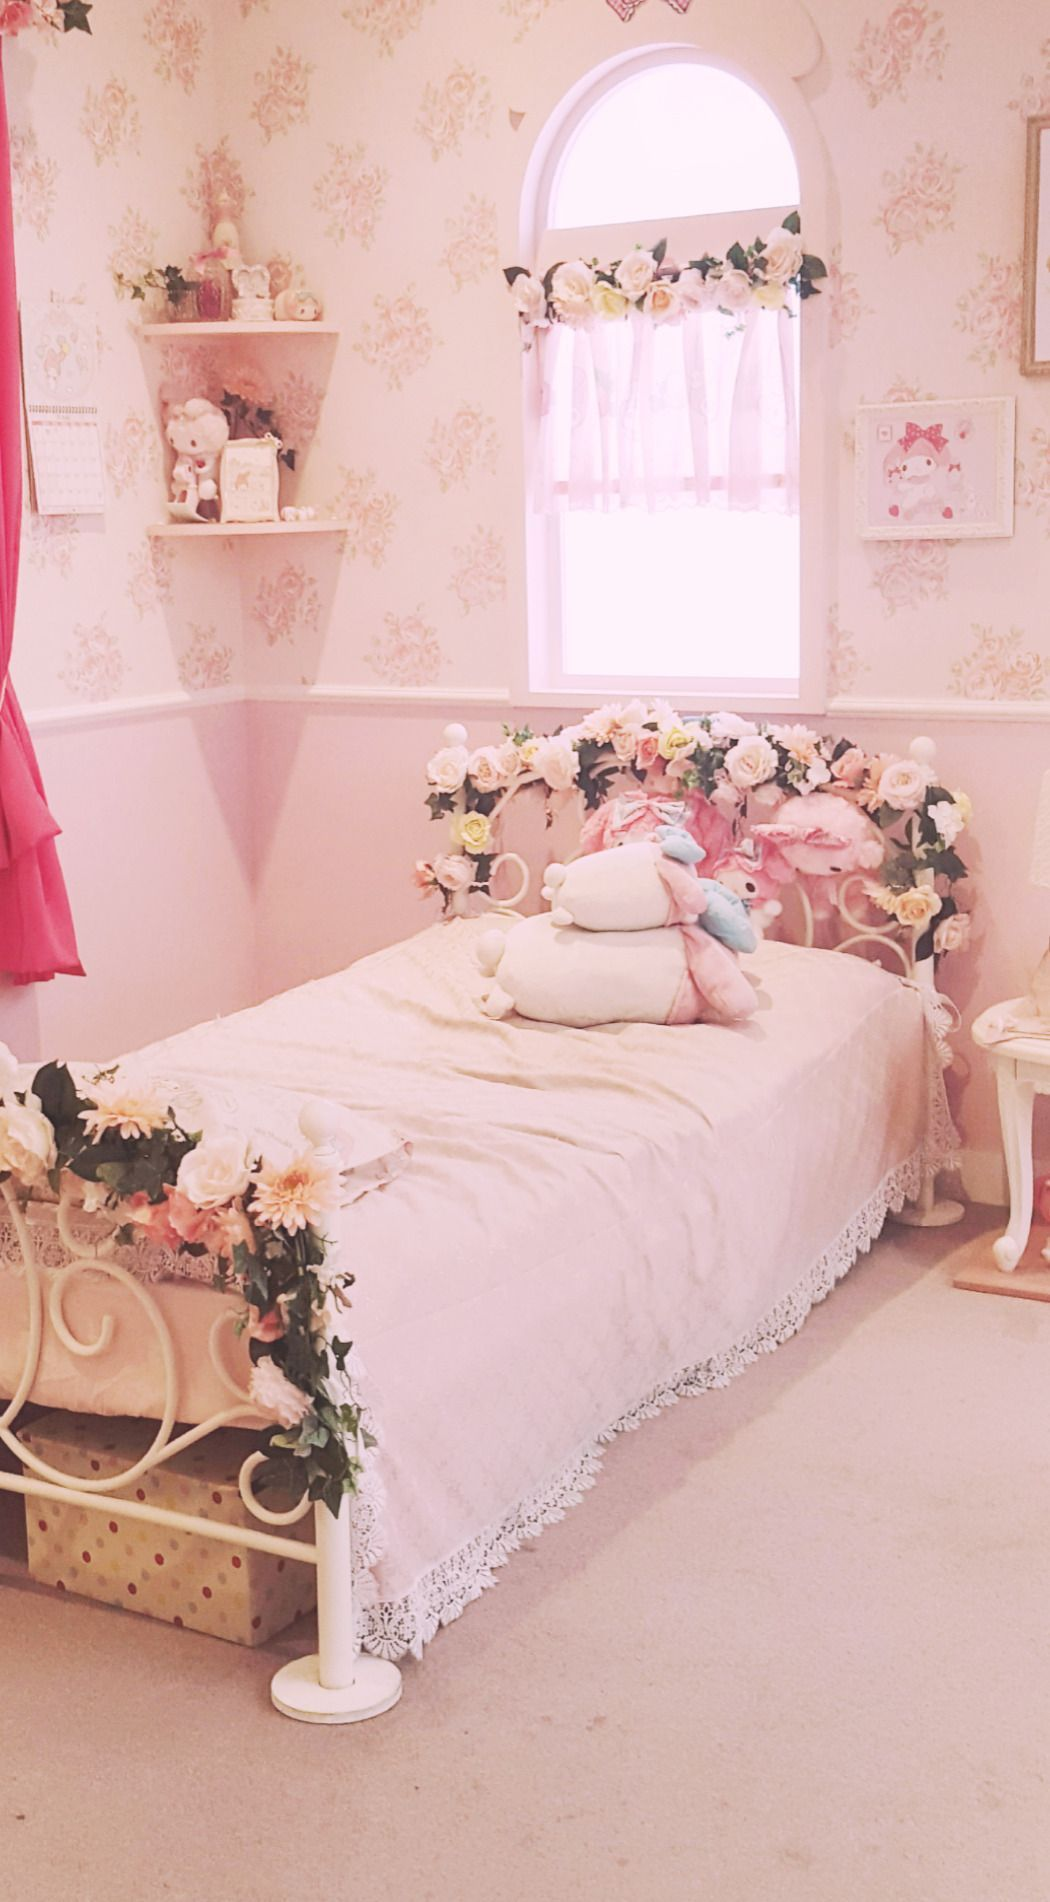 Japanese Bedrooms Have Several Enthusiasts If You Do Not Have It